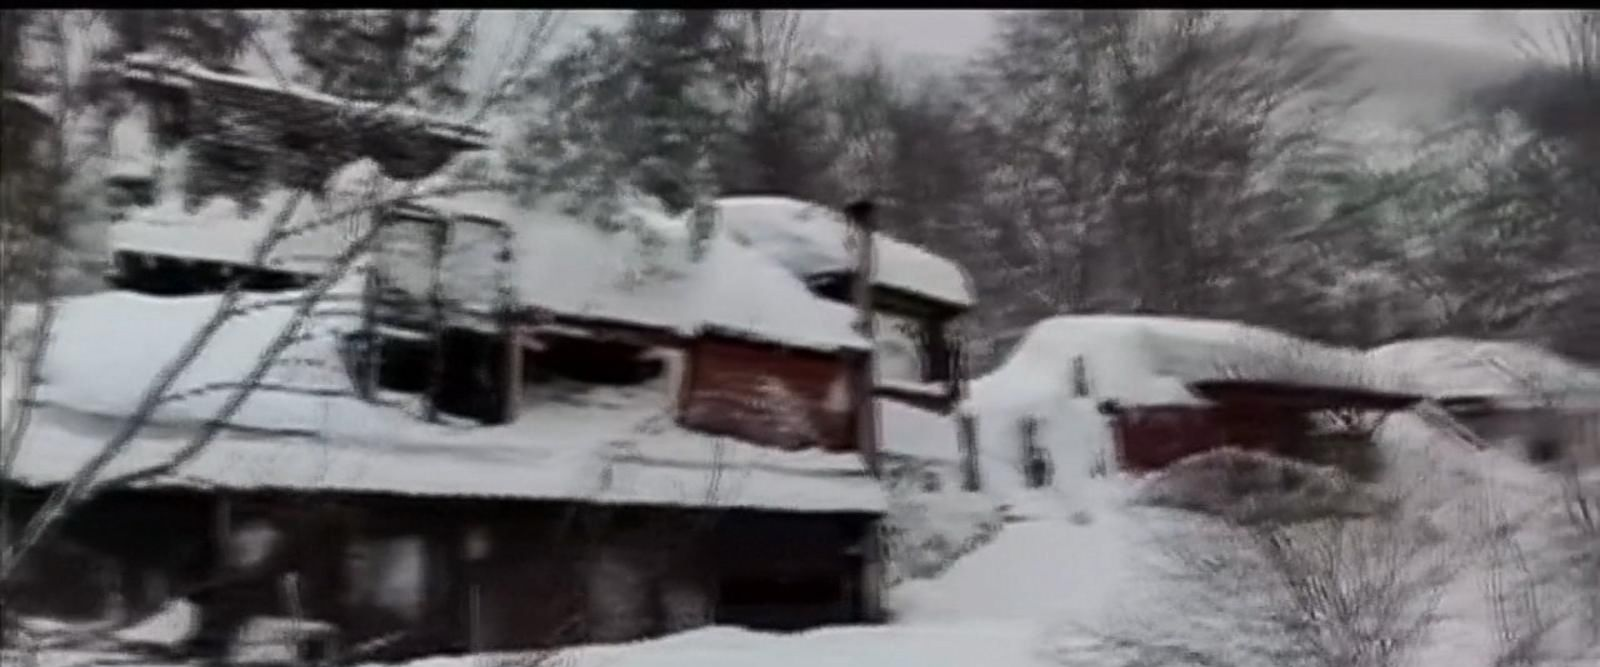 VIDEO: An Urgent Search for Survivors After an Avalanche Buries a Luxury Hotel in Italy